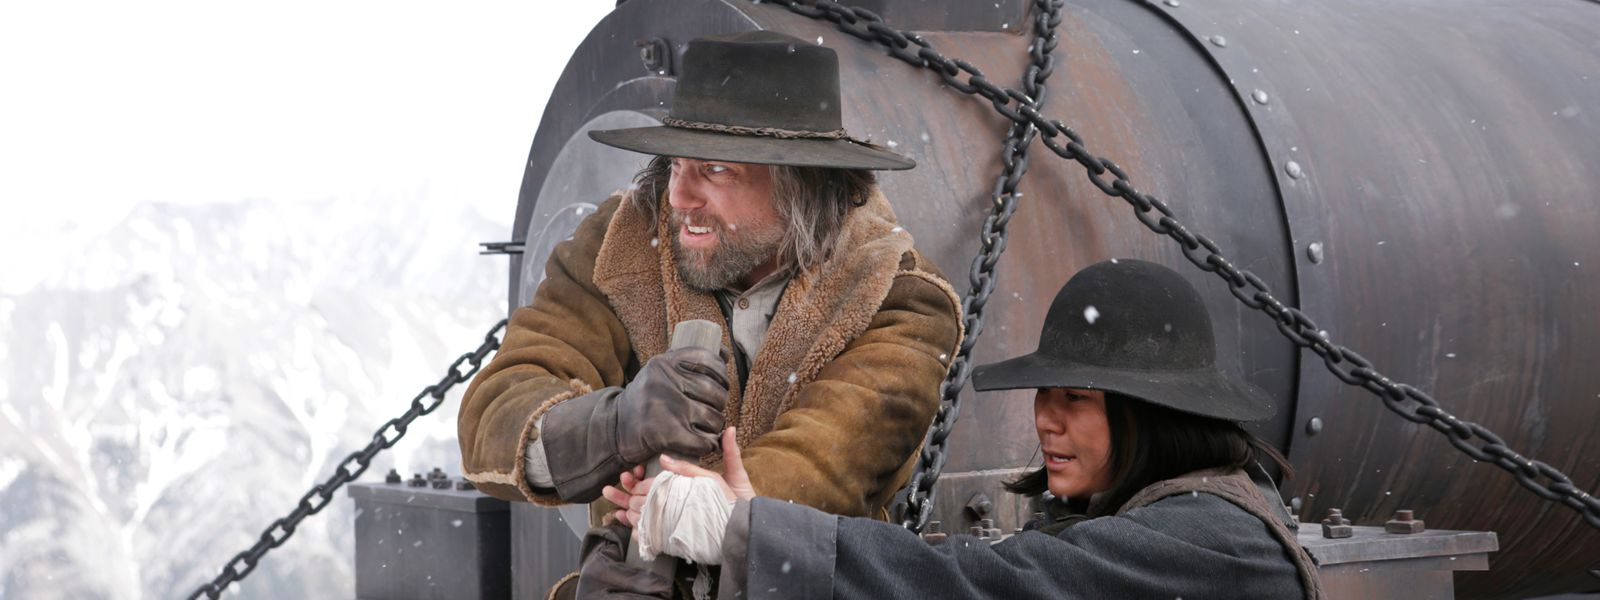 hell-on wheels-episode-502-post-cullen-mount-800×600